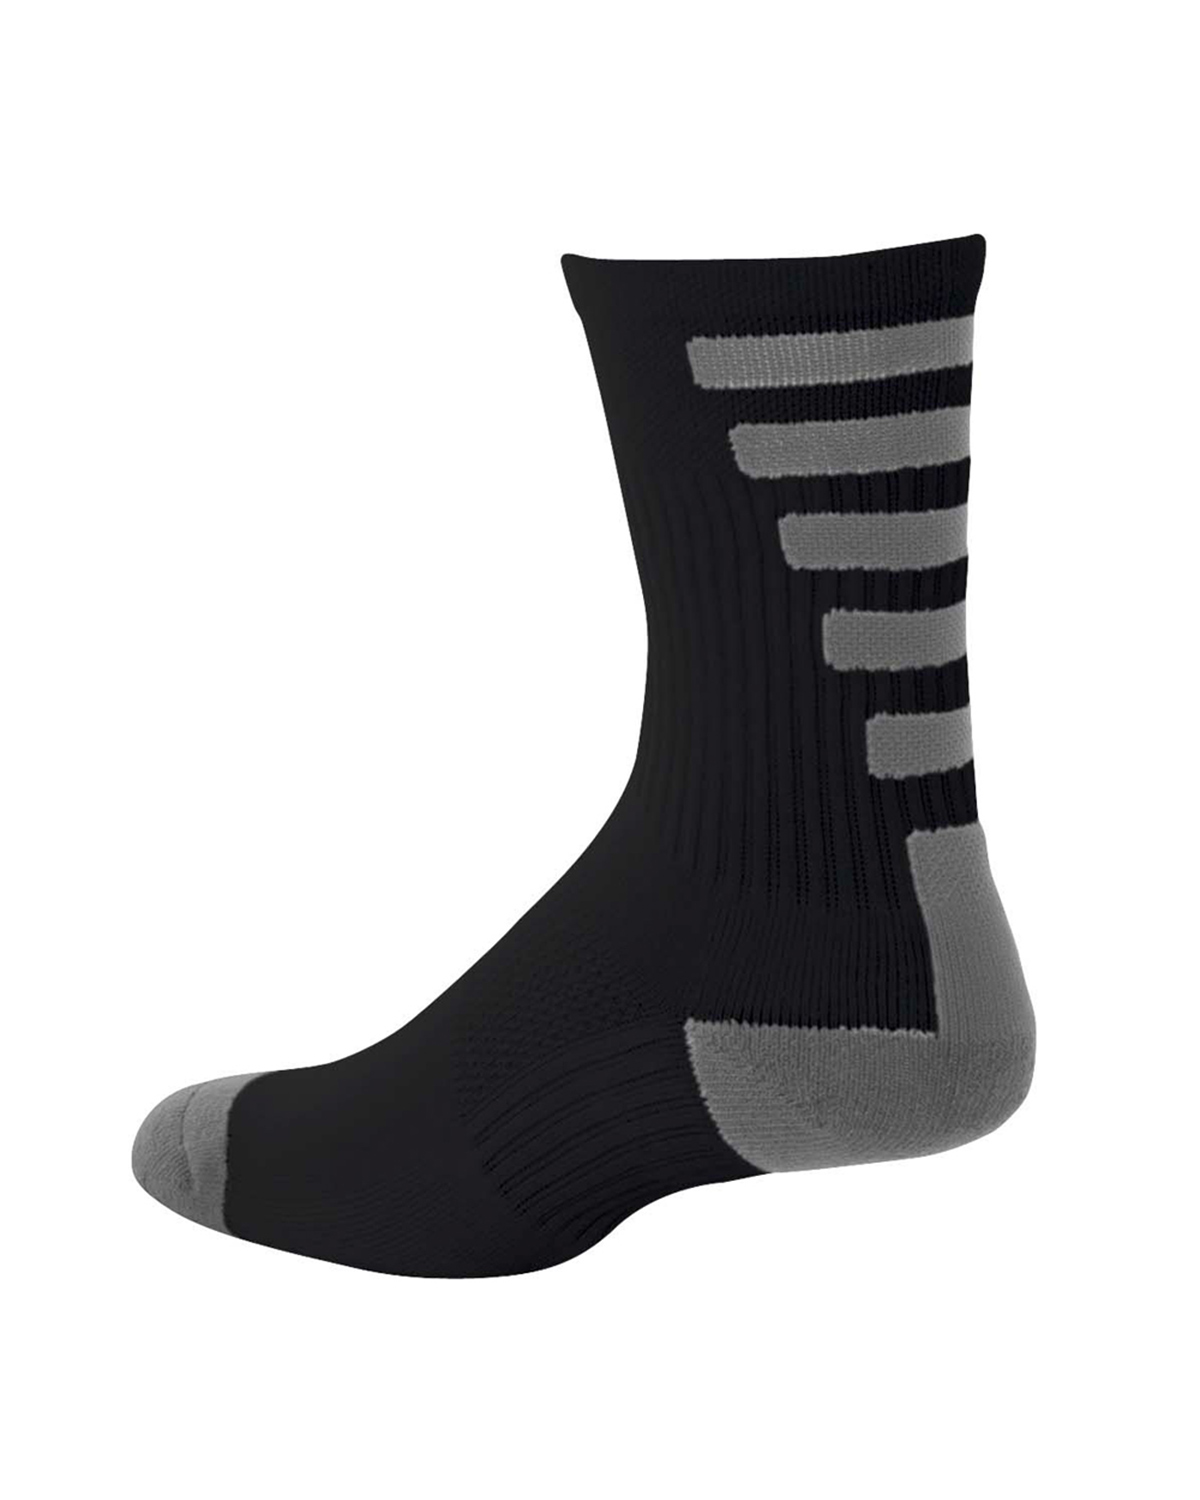 A4 Drop Ship S8007 - Performance Crew Socks